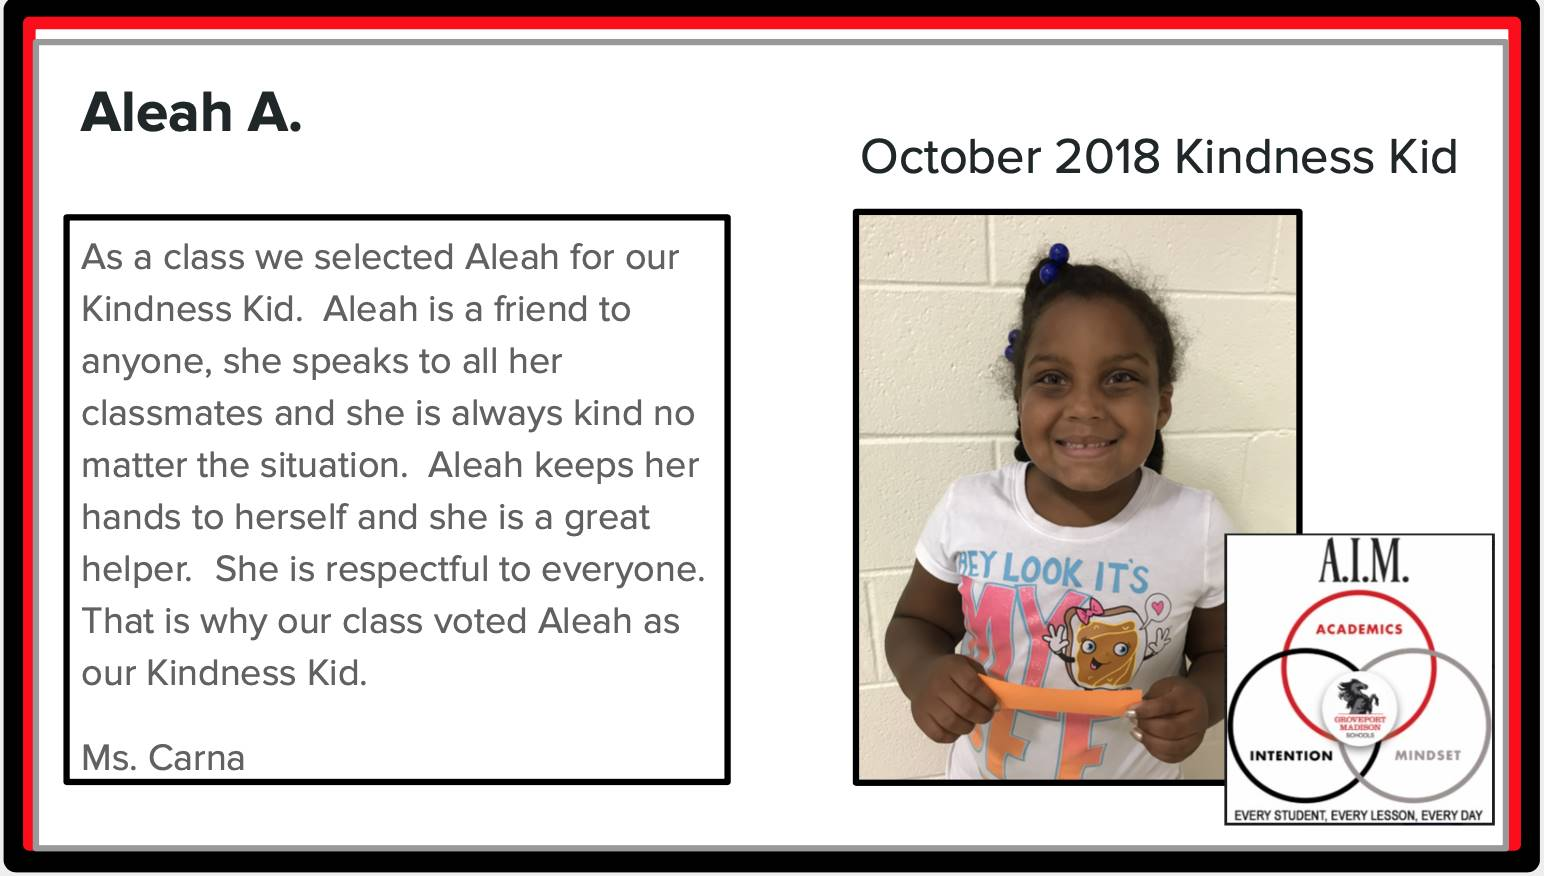 Kindness Kid Aleah